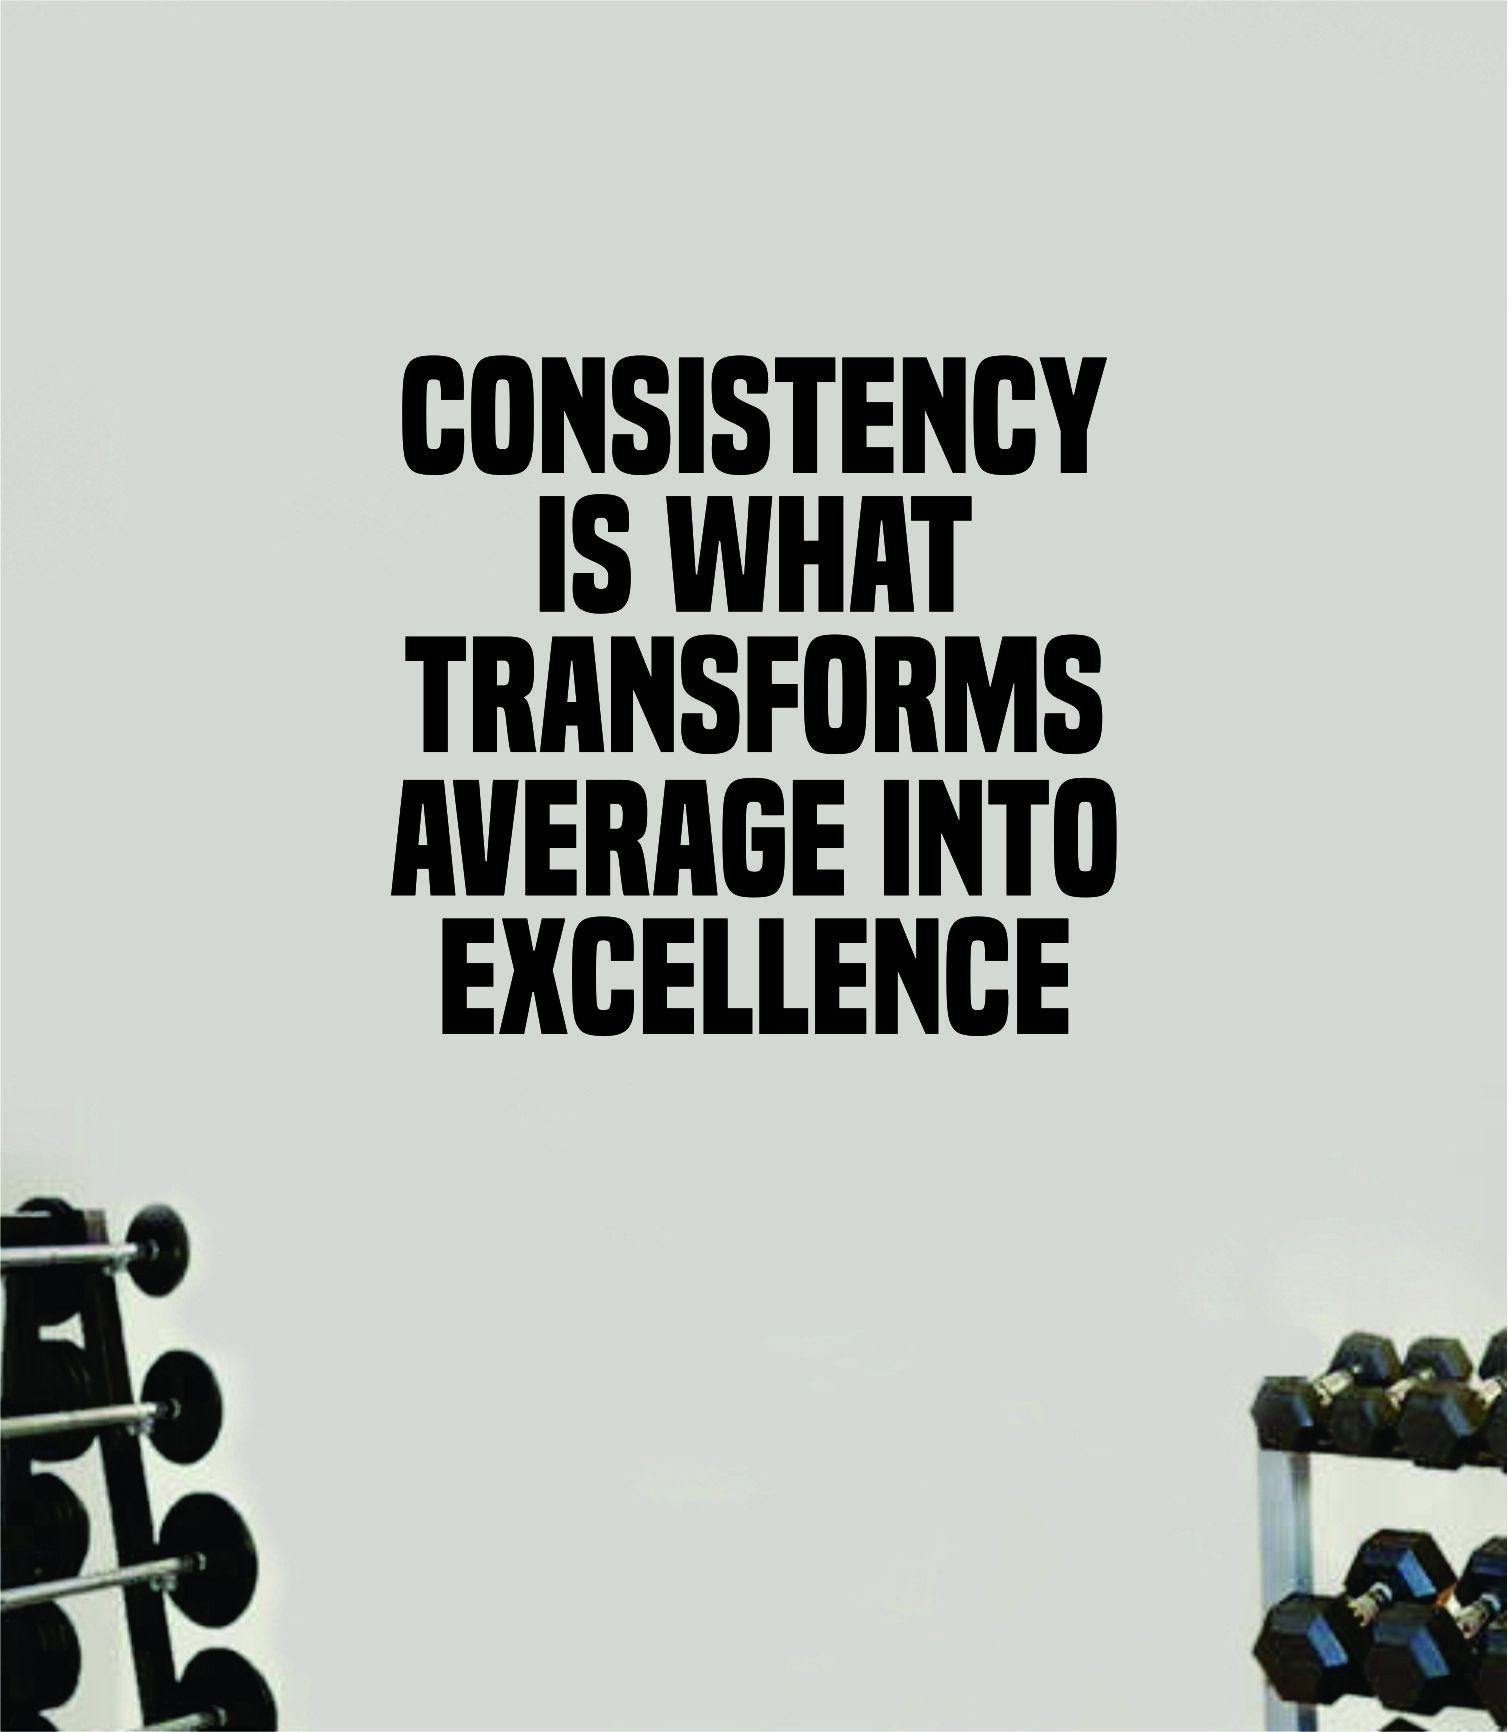 Consistency Average Excellence Wall Decal Home Decor Bedroom Room Vinyl Sticker Art Teen Work Out Quote Beast Gym Fitness Lift Strong Inspirational Motivational Health - white